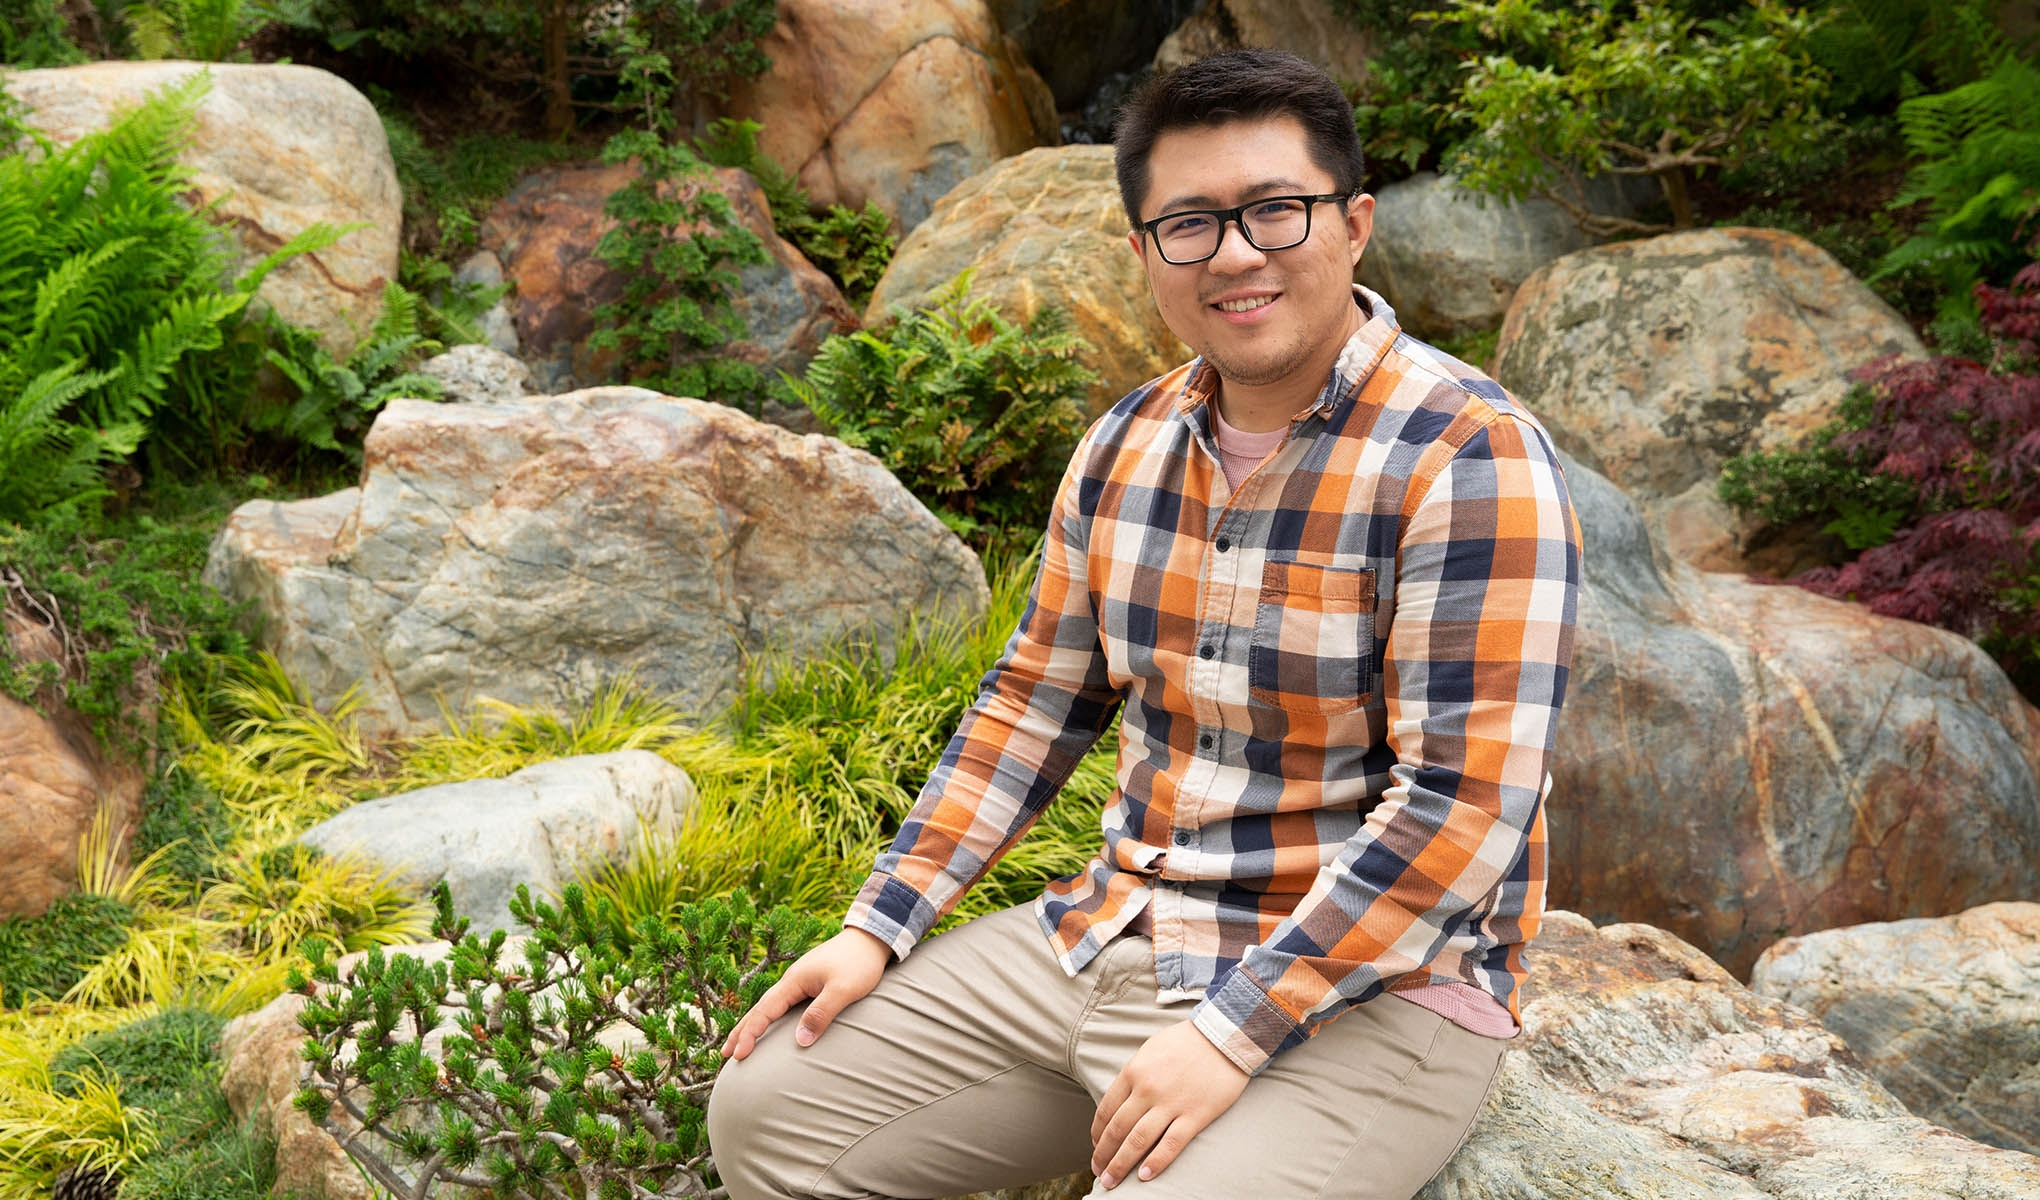 Cheng Yu poses in front of greenery